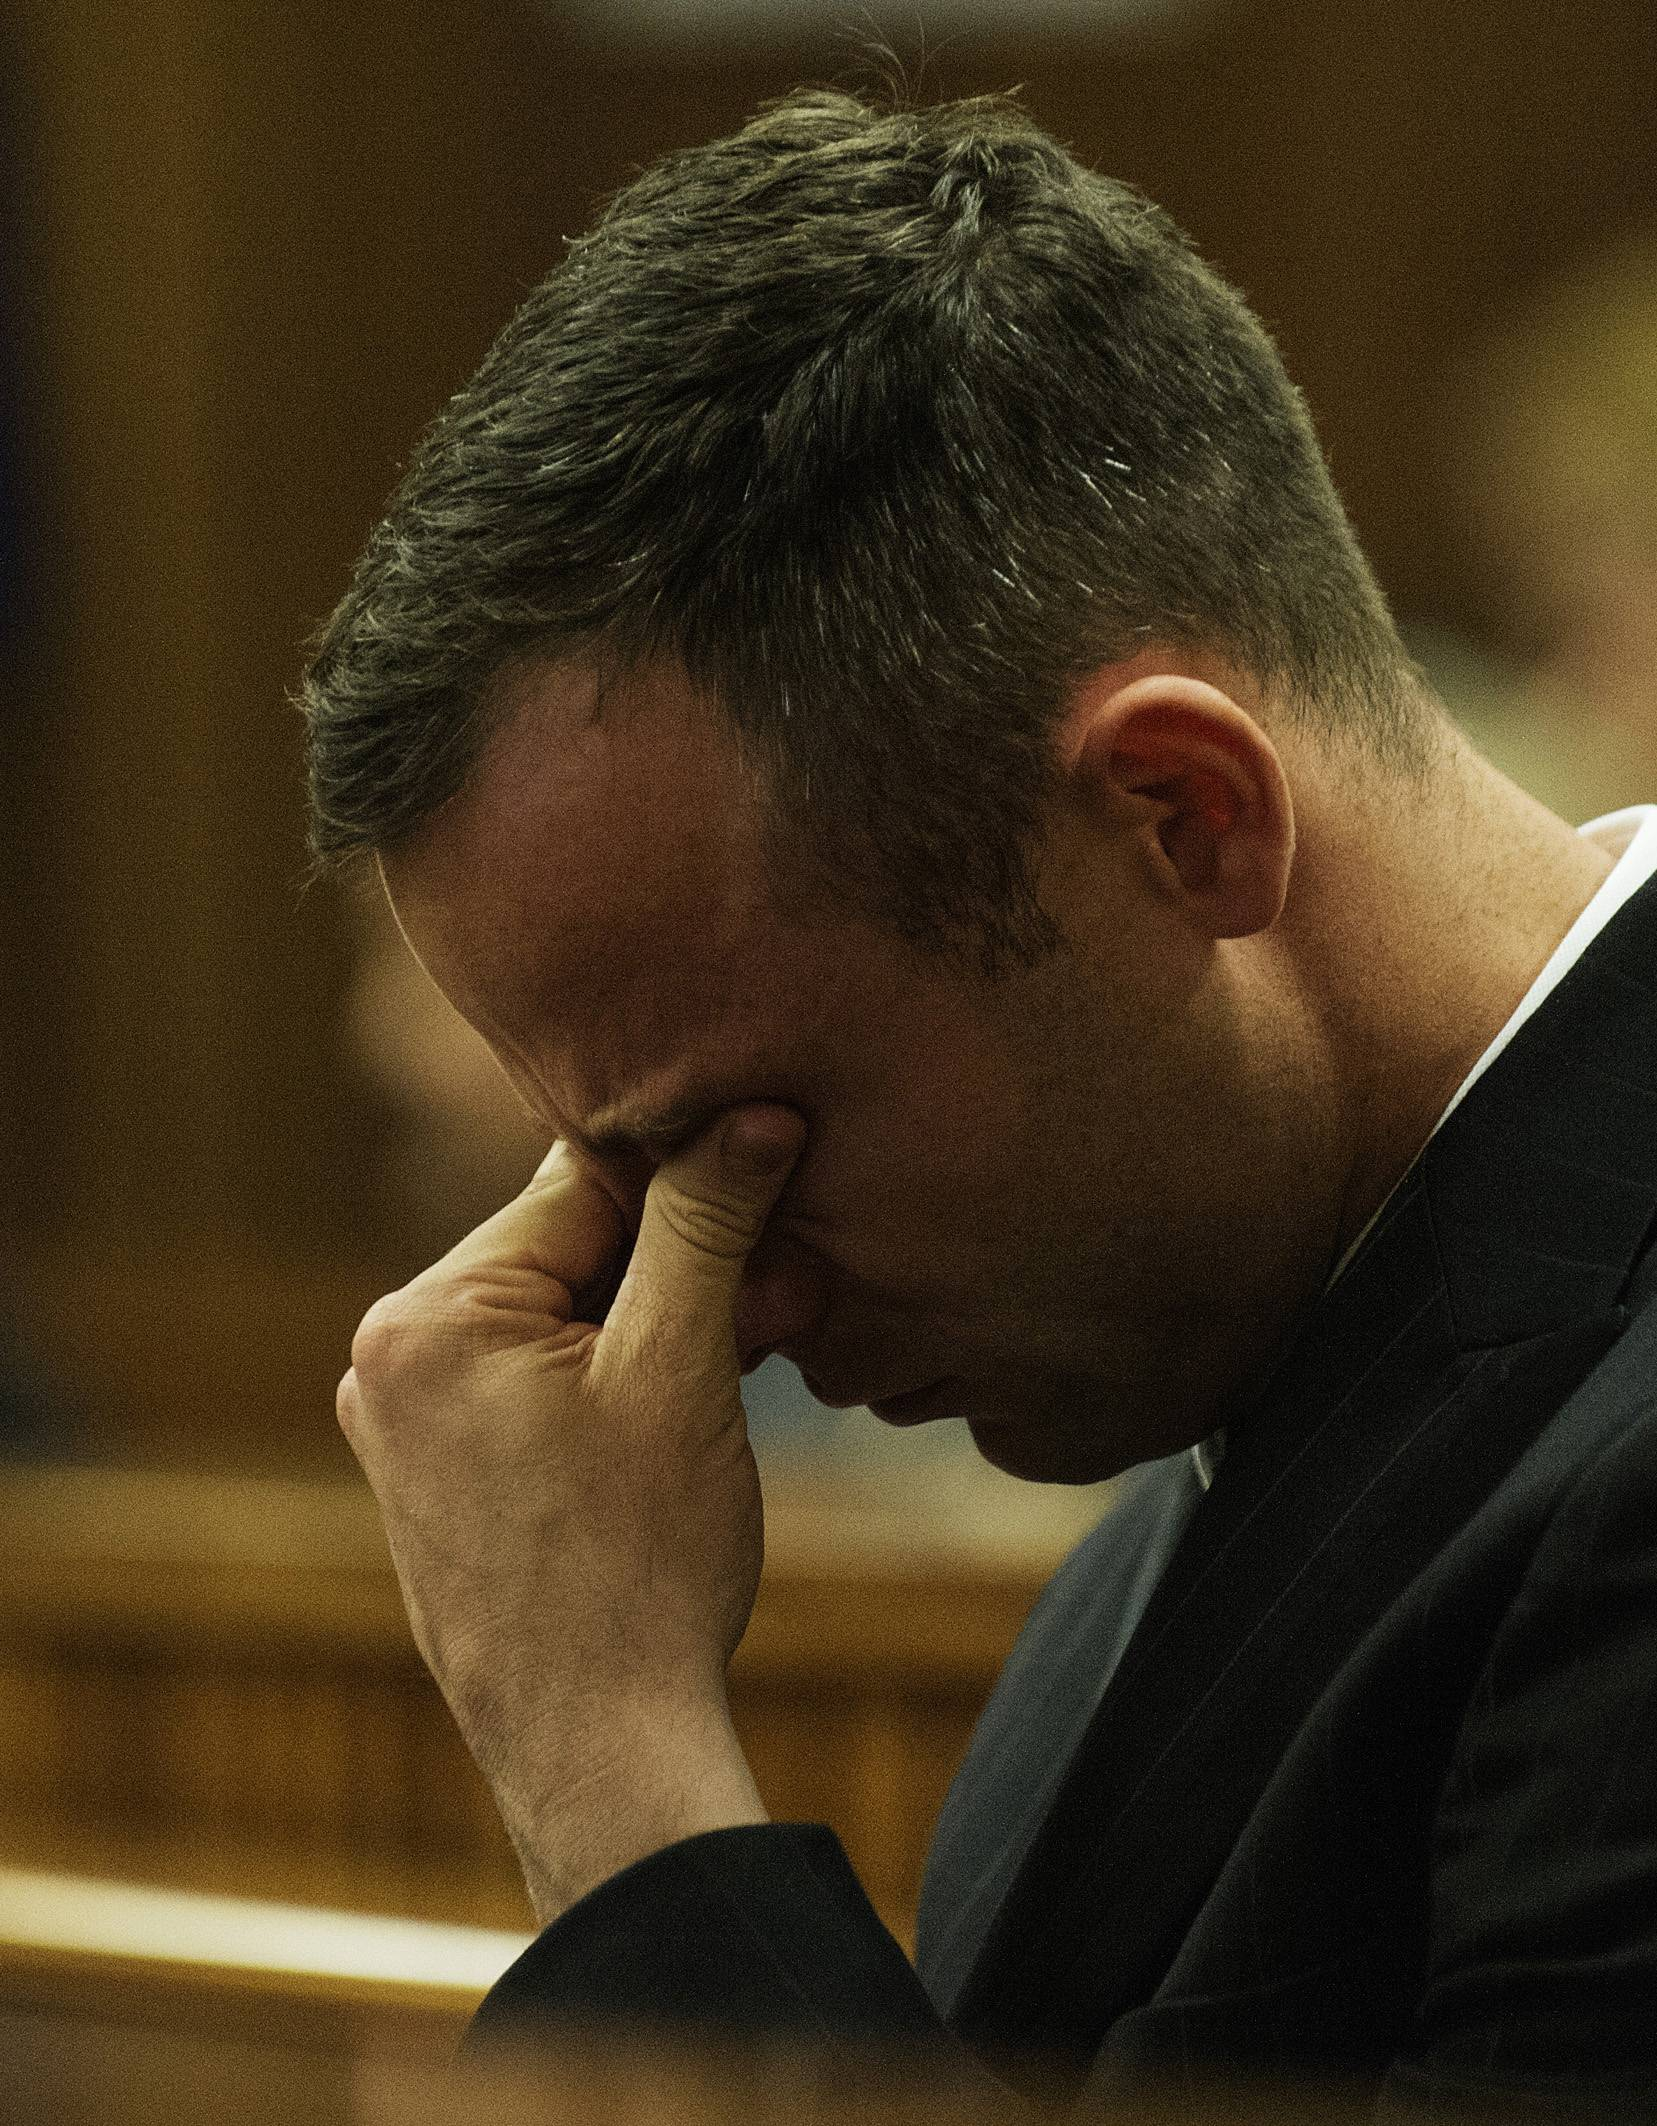 Oscar Pistorius reacts as he listens to forensic evidence being given in court in Pretoria, South Africa, Wednesday, April 16, 2014.  Pistorius is charged with the murder of his girlfriend, Reeva Steenkamp, on Valentines Day in 2013.